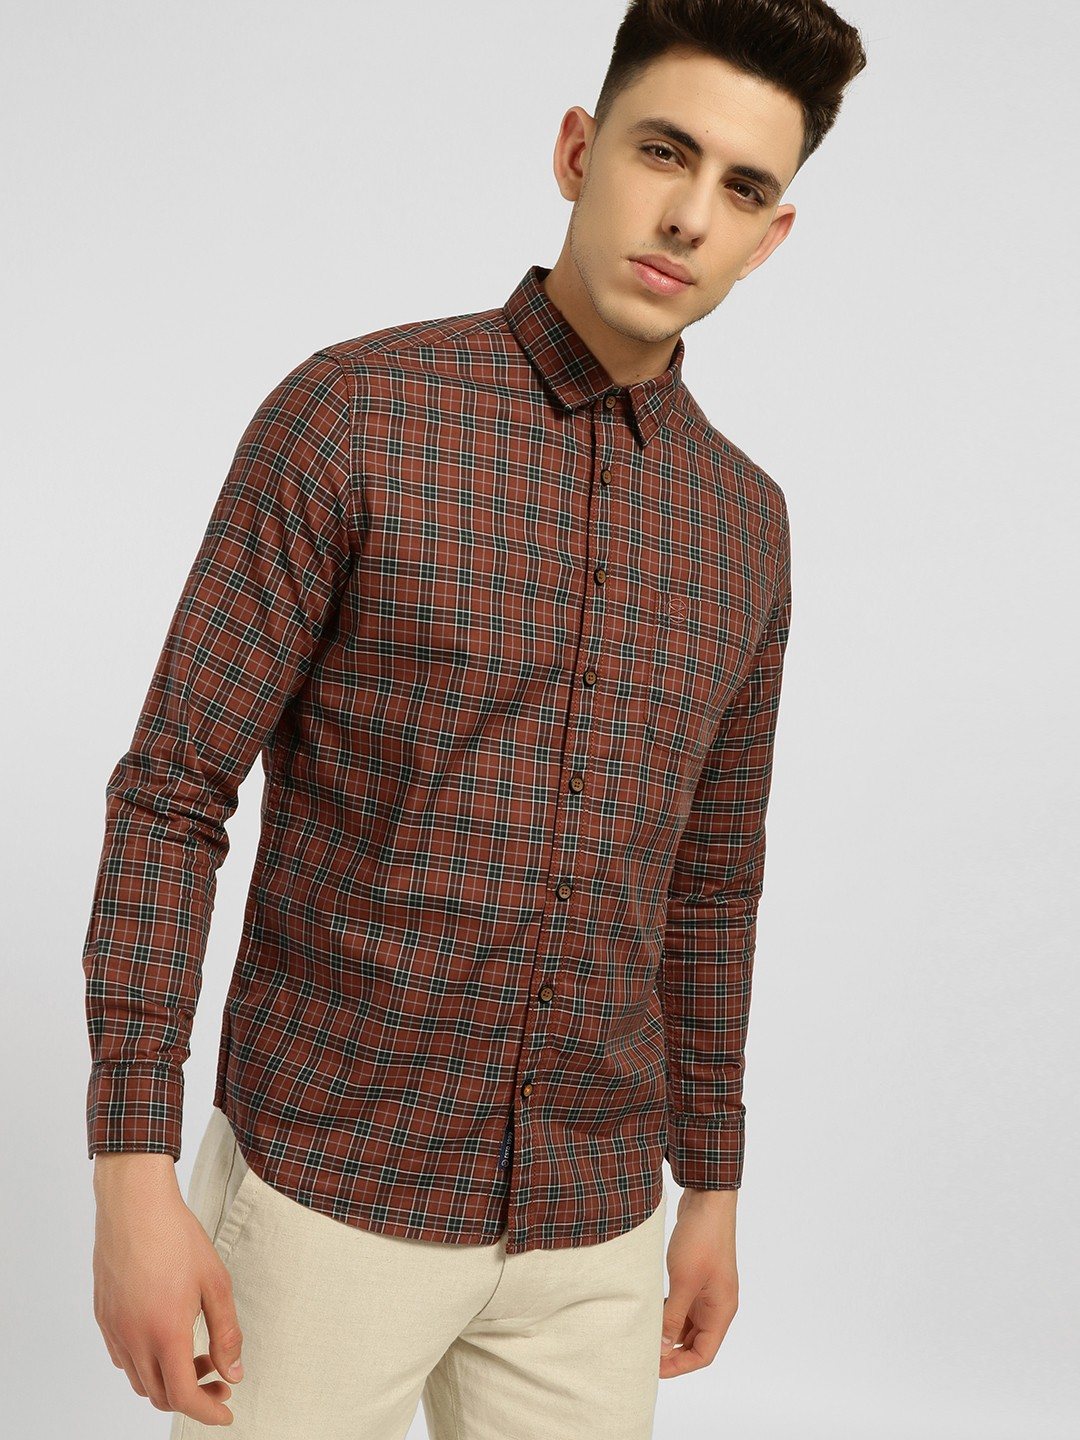 SCULLERS Green Plaid Check Casual Shirt 1